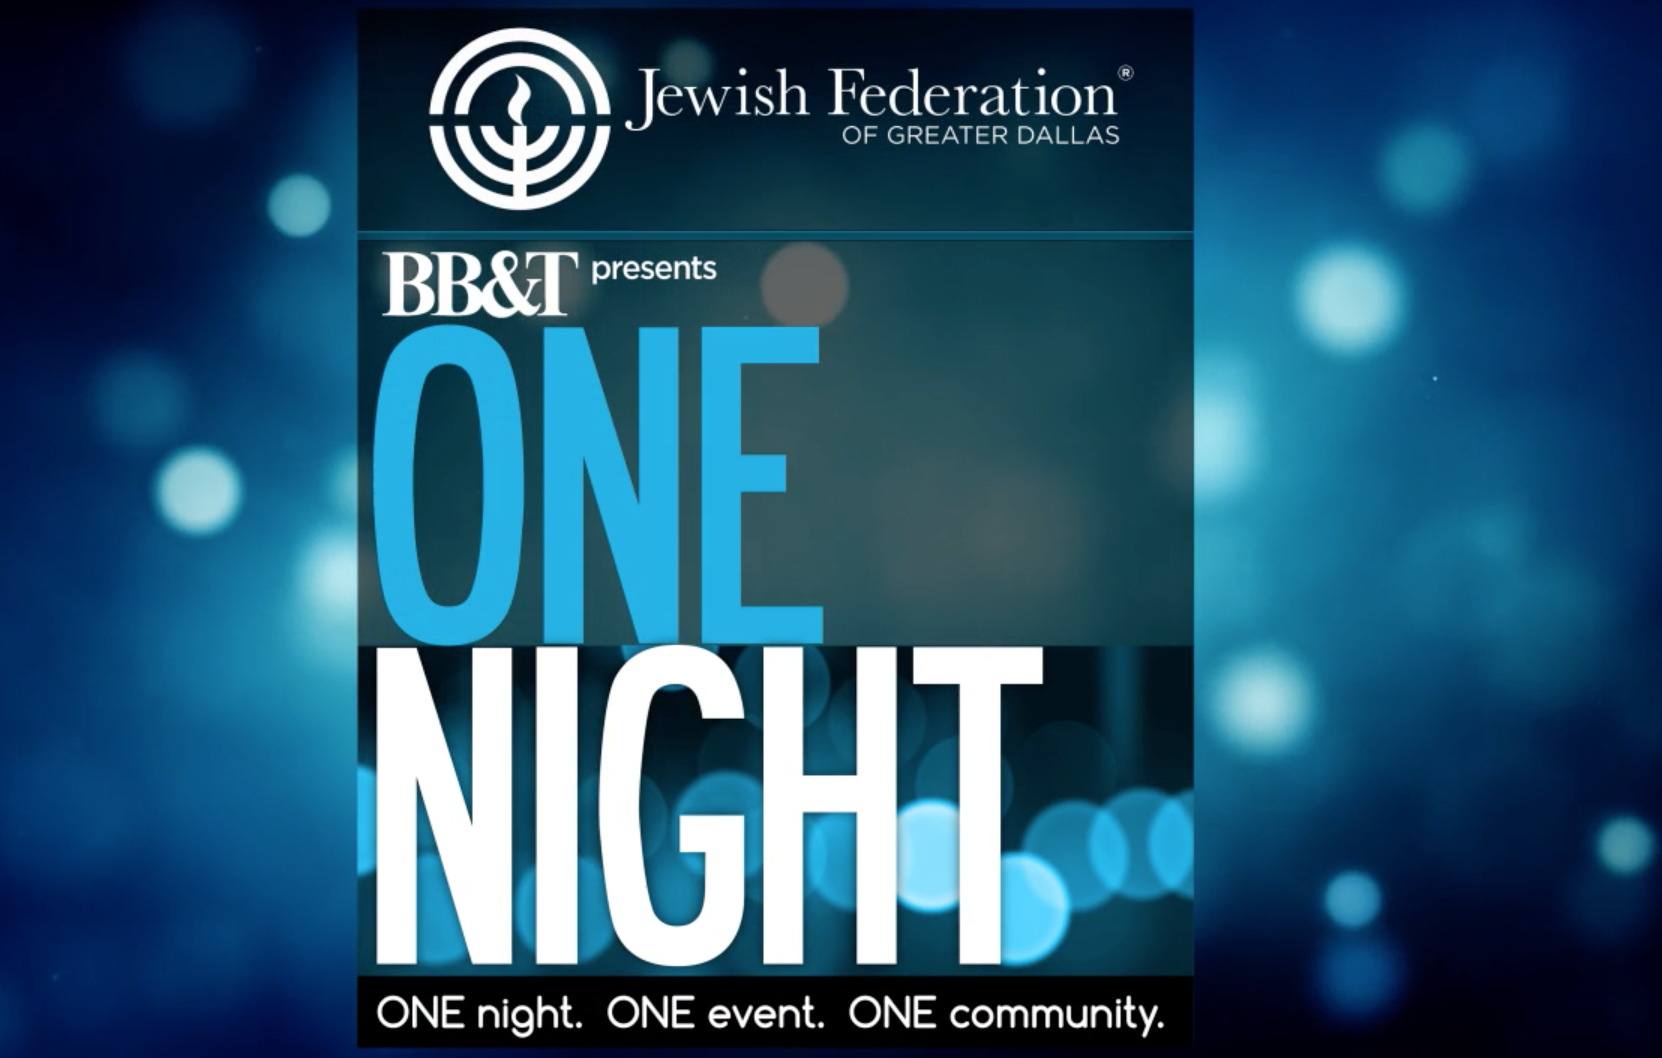 BEYOND Promotional Film - Jewish Federation of Greater Dallas